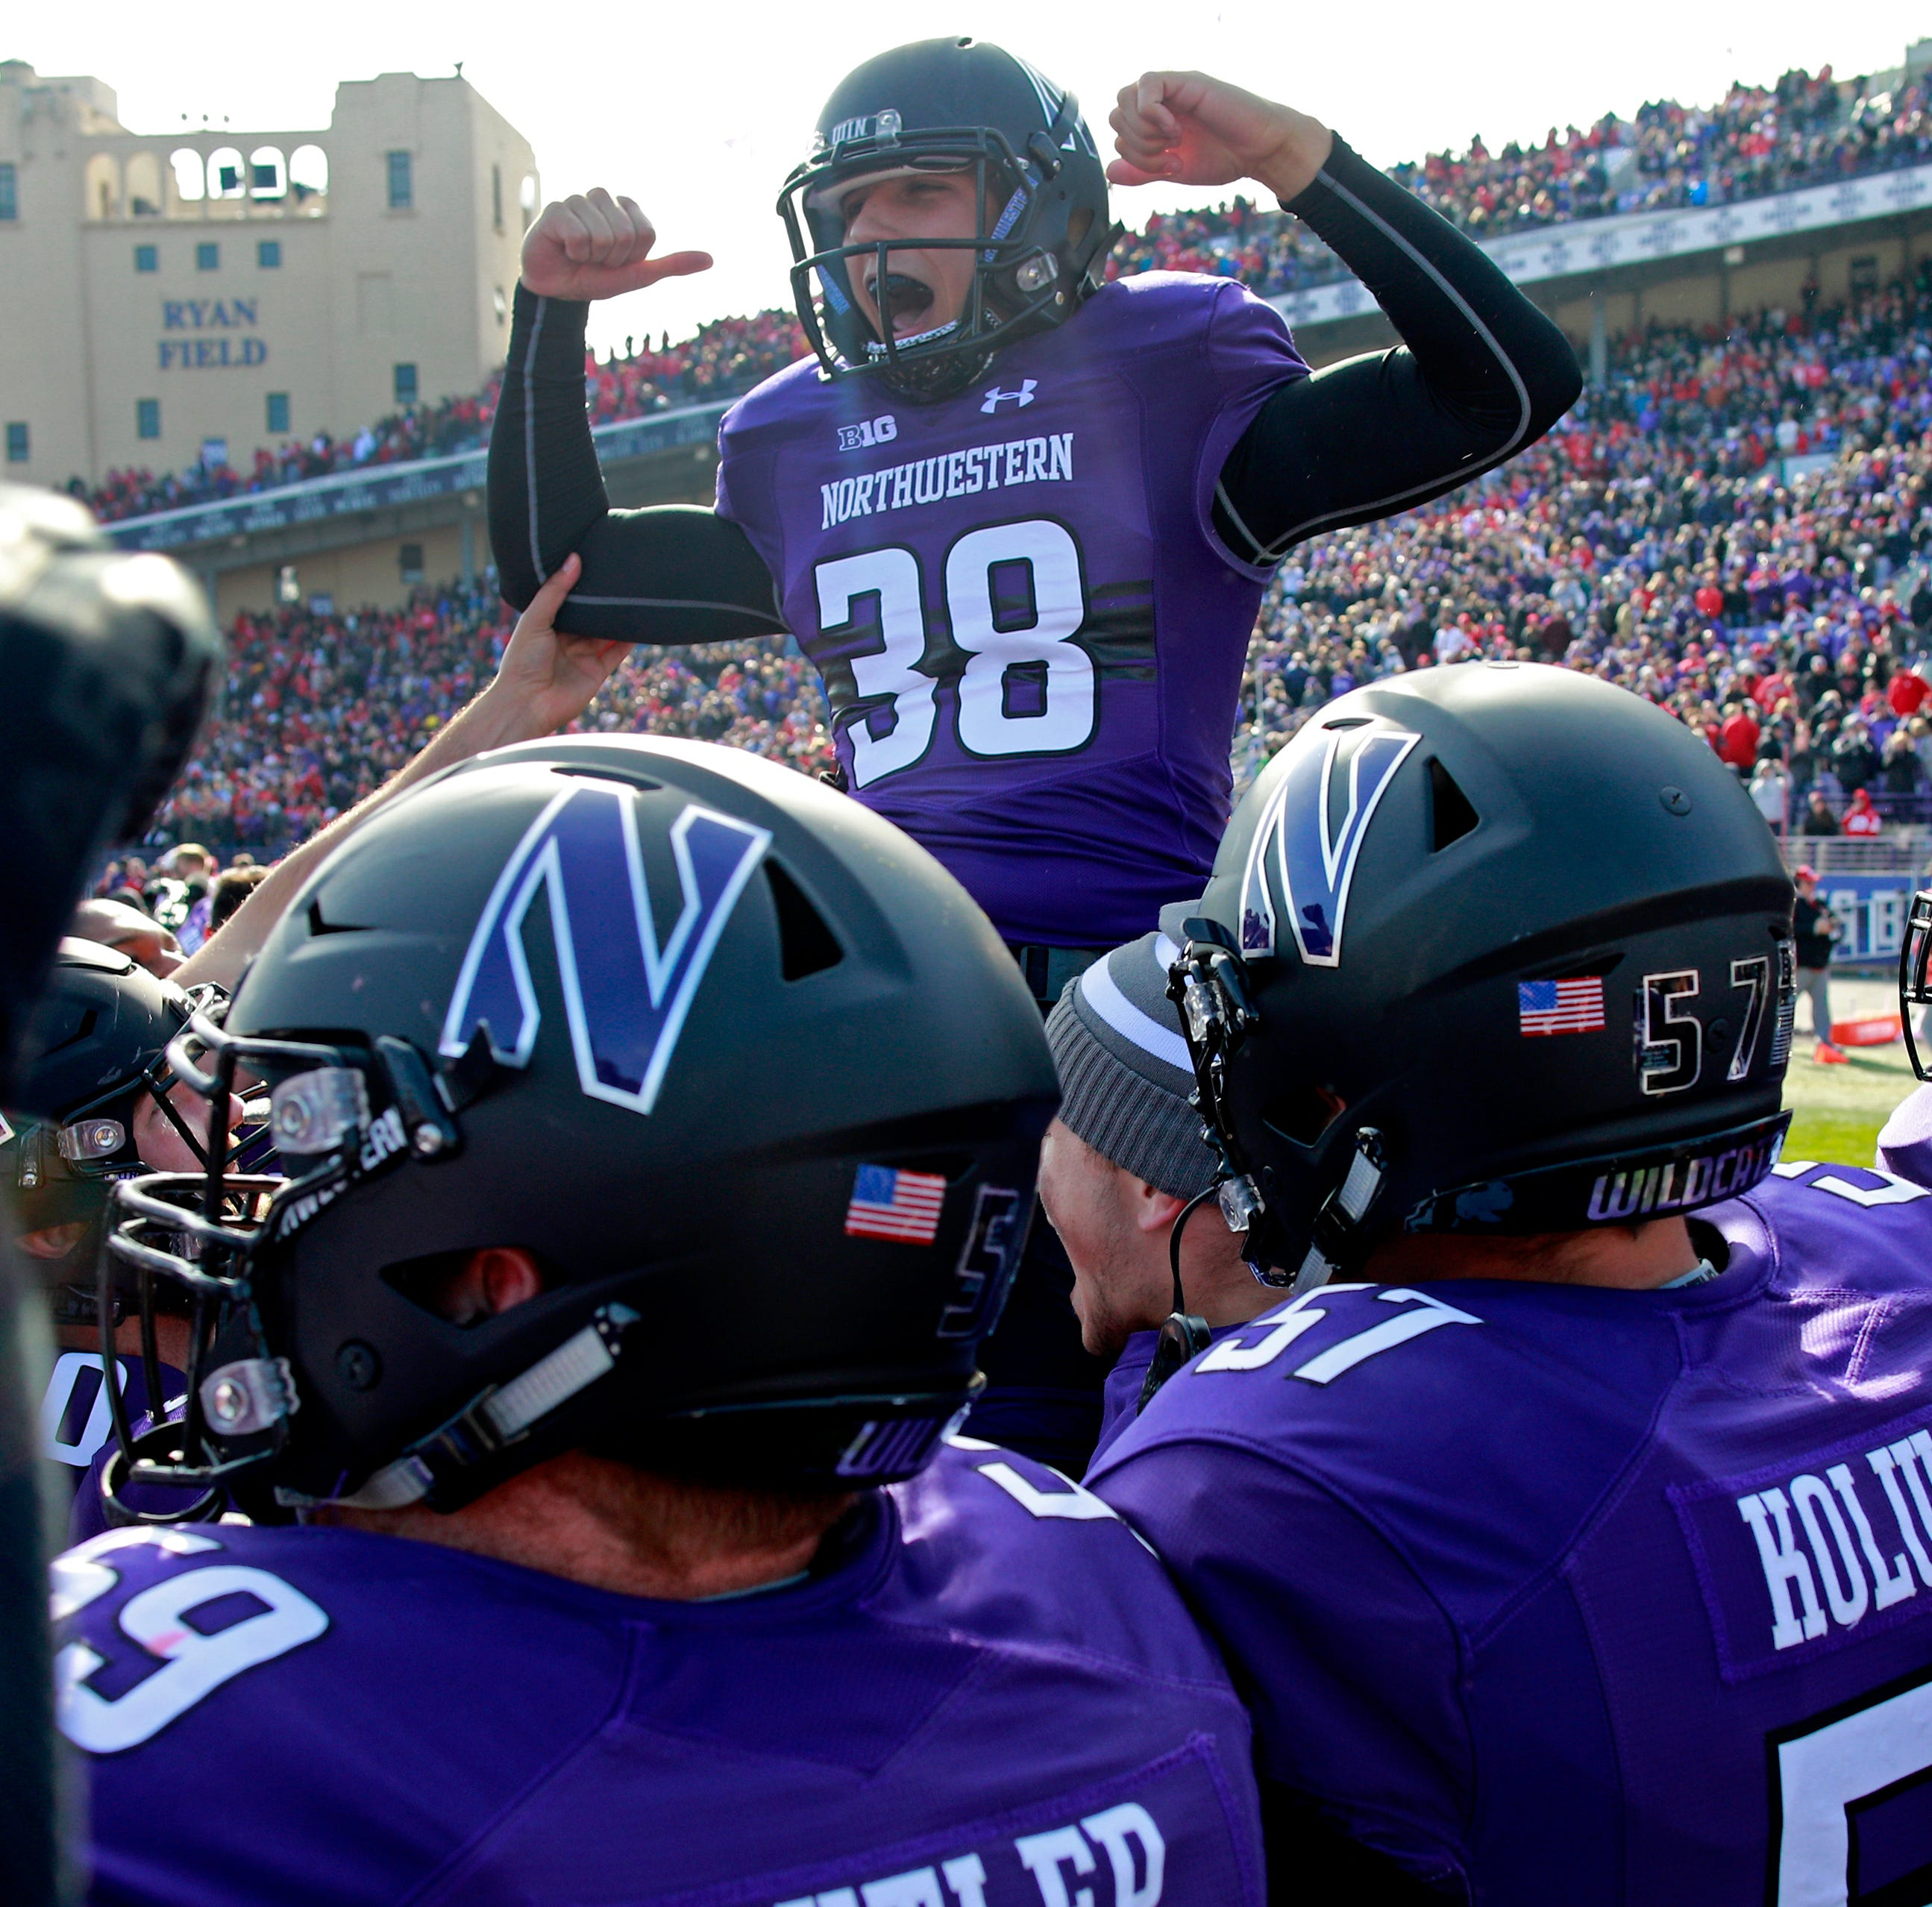 Spring Grove grad wins OT game for Northwestern football; named player of week